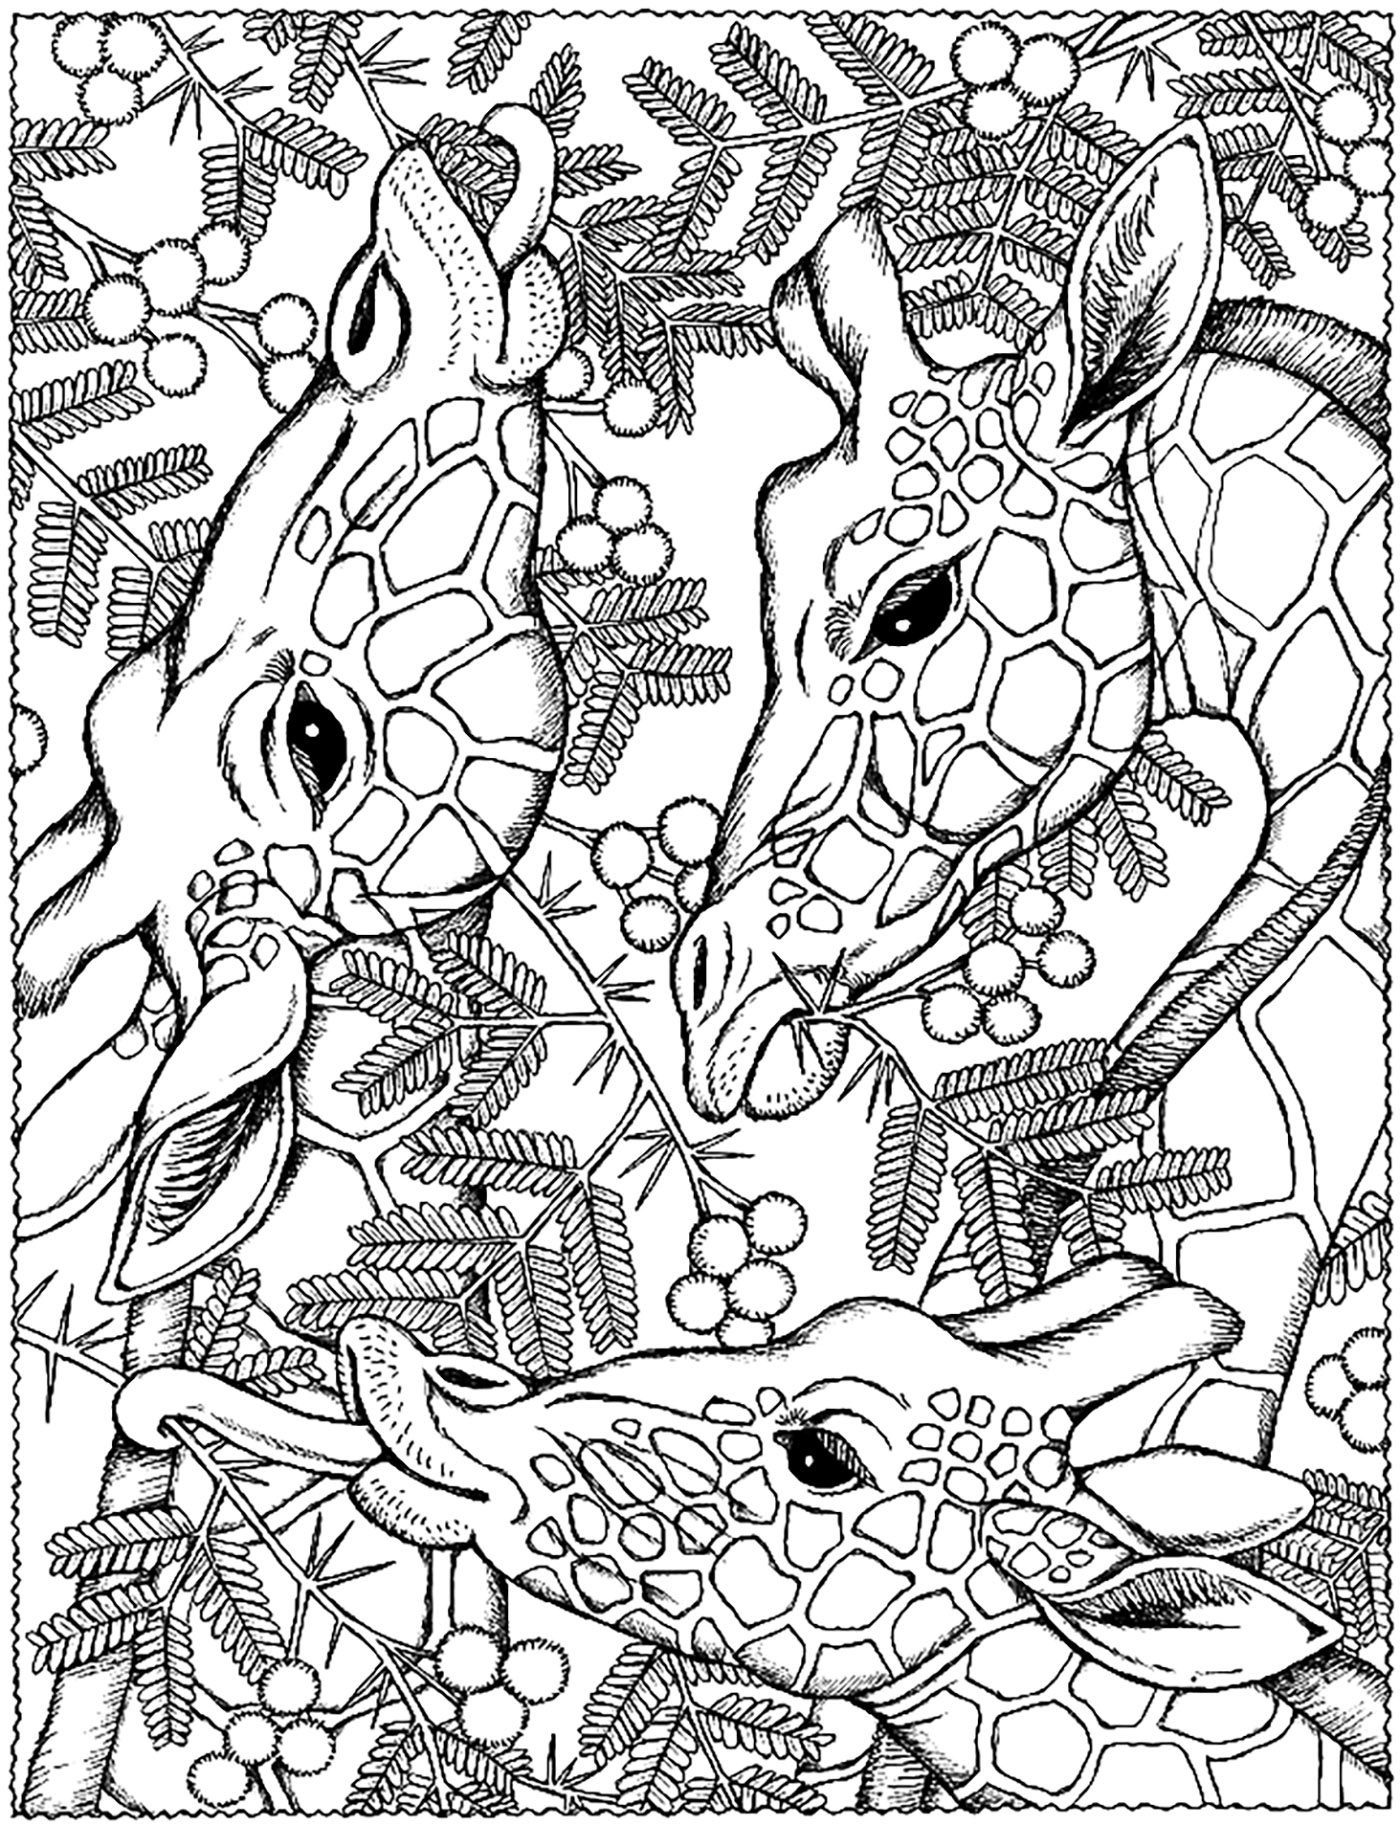 Giraffes heads - Giraffes Adult Coloring Pages